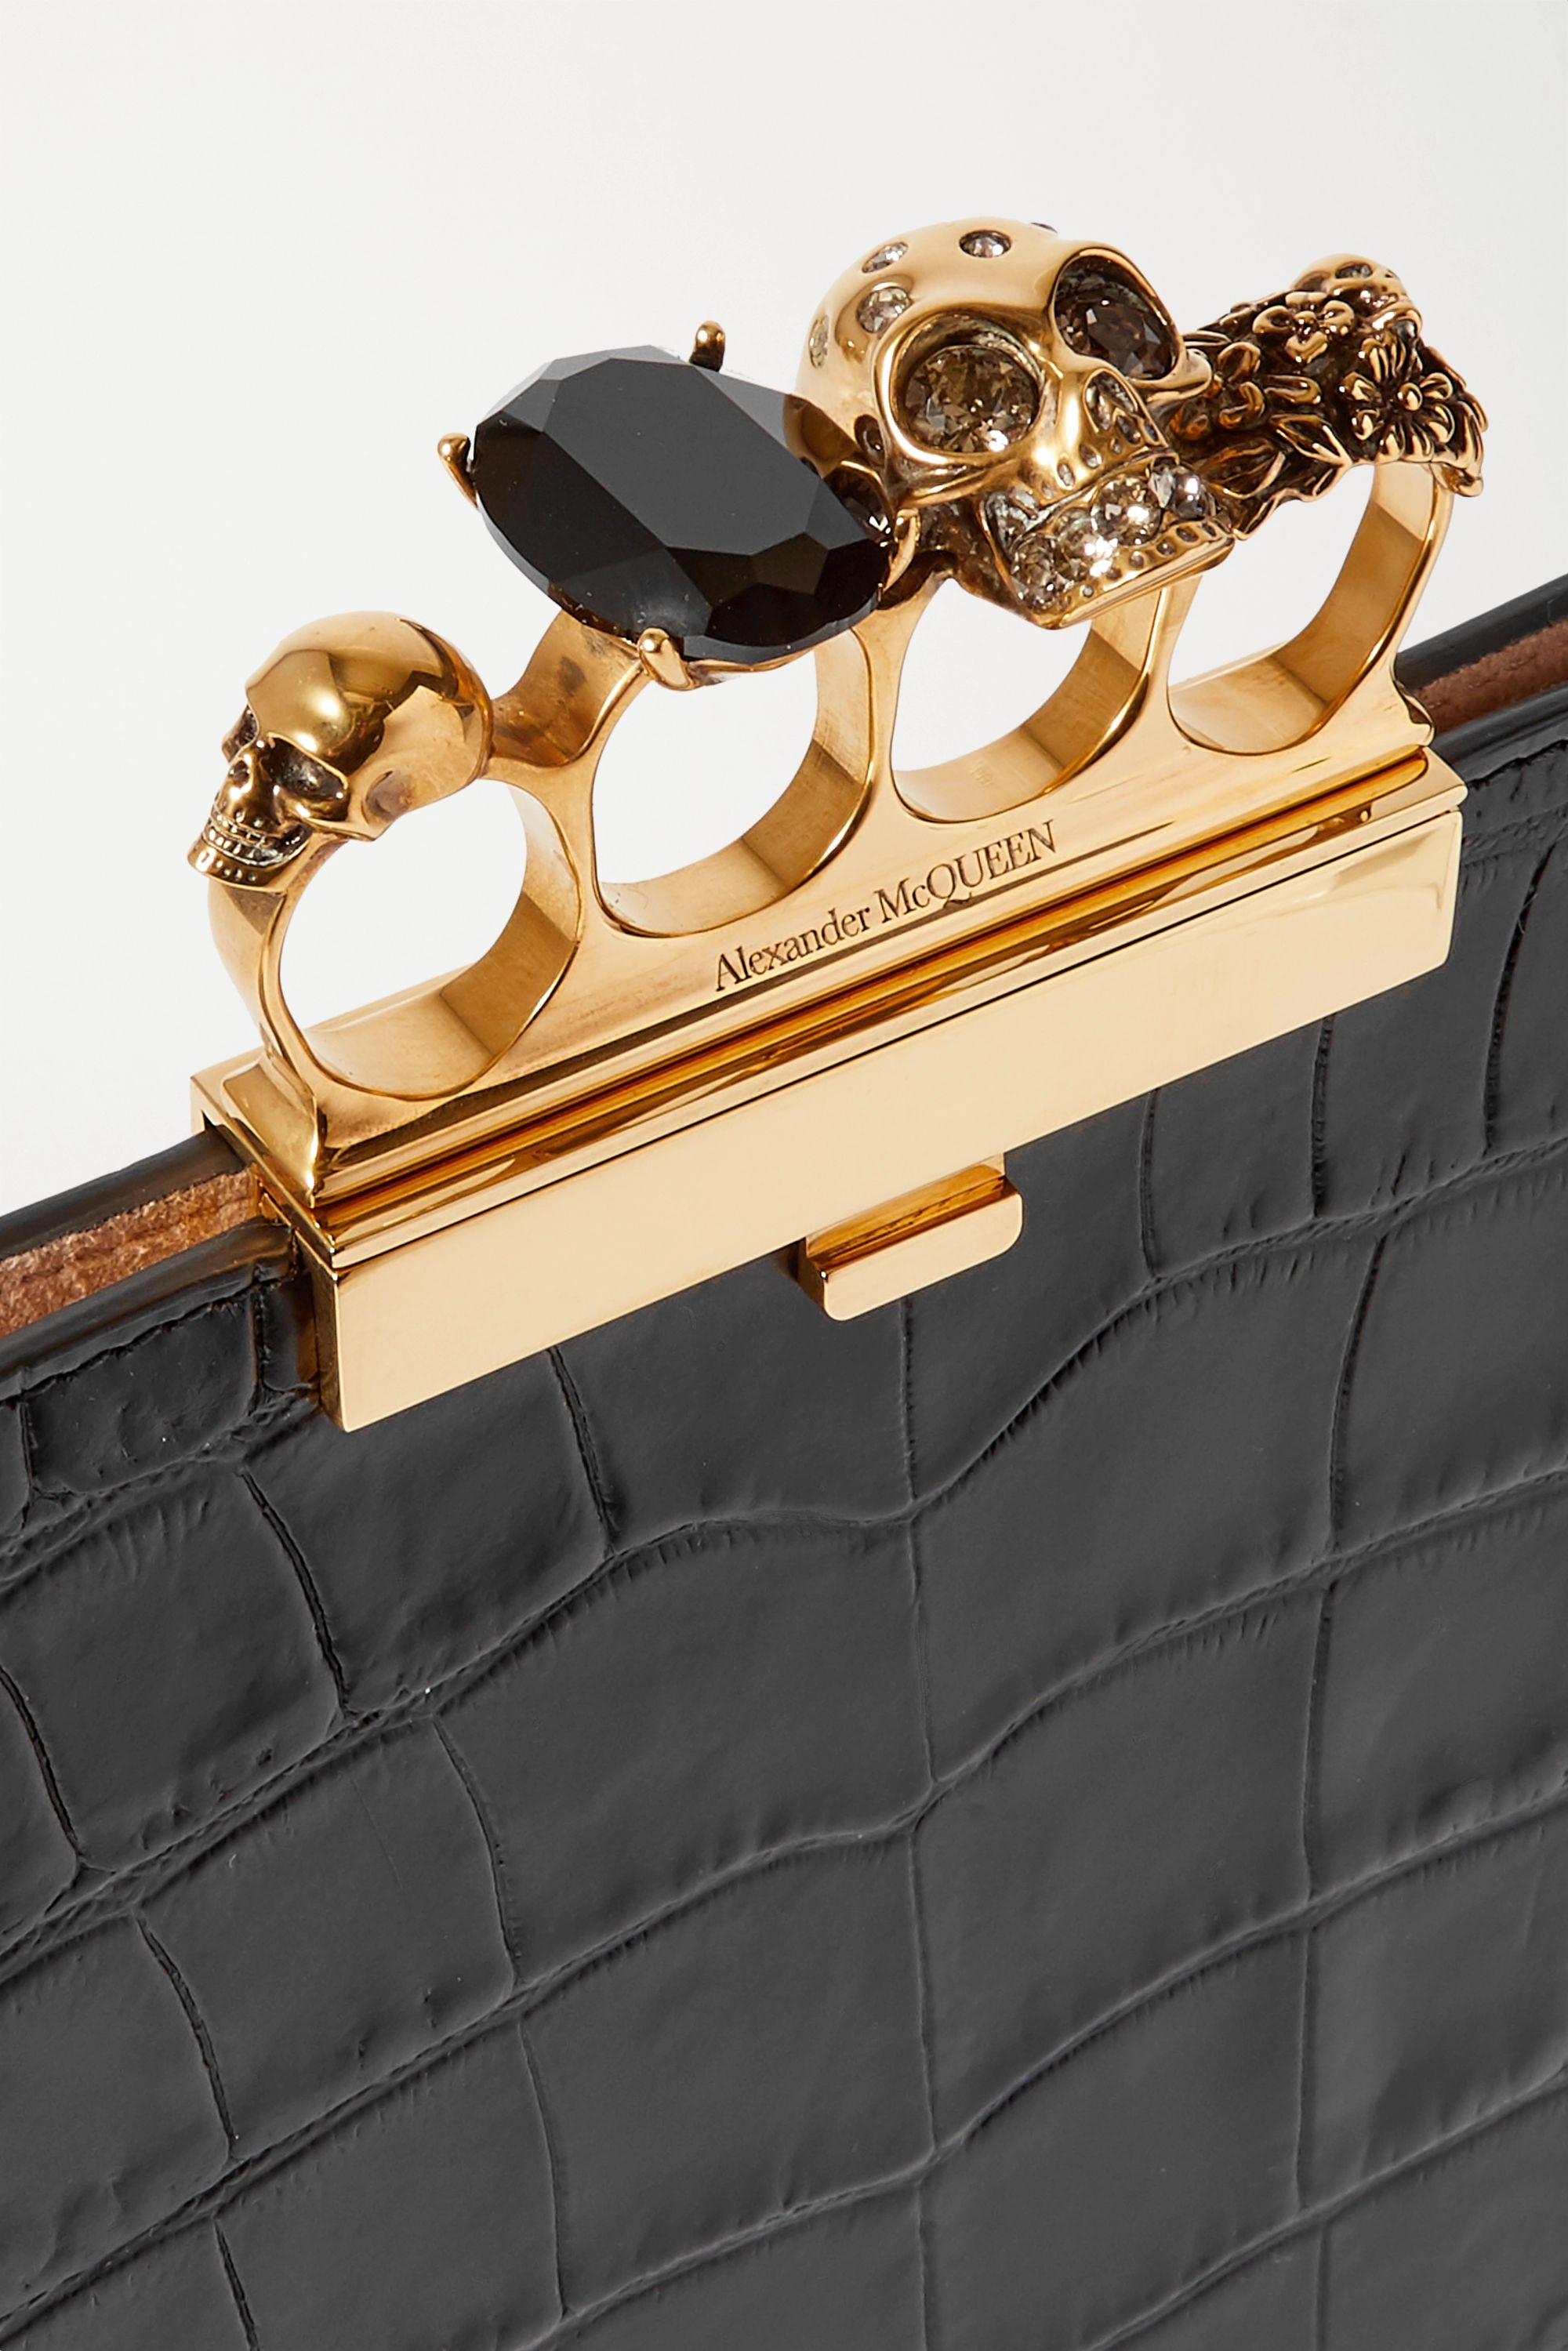 Alexander McQueen Four Ring embellished croc-effect leather clutch